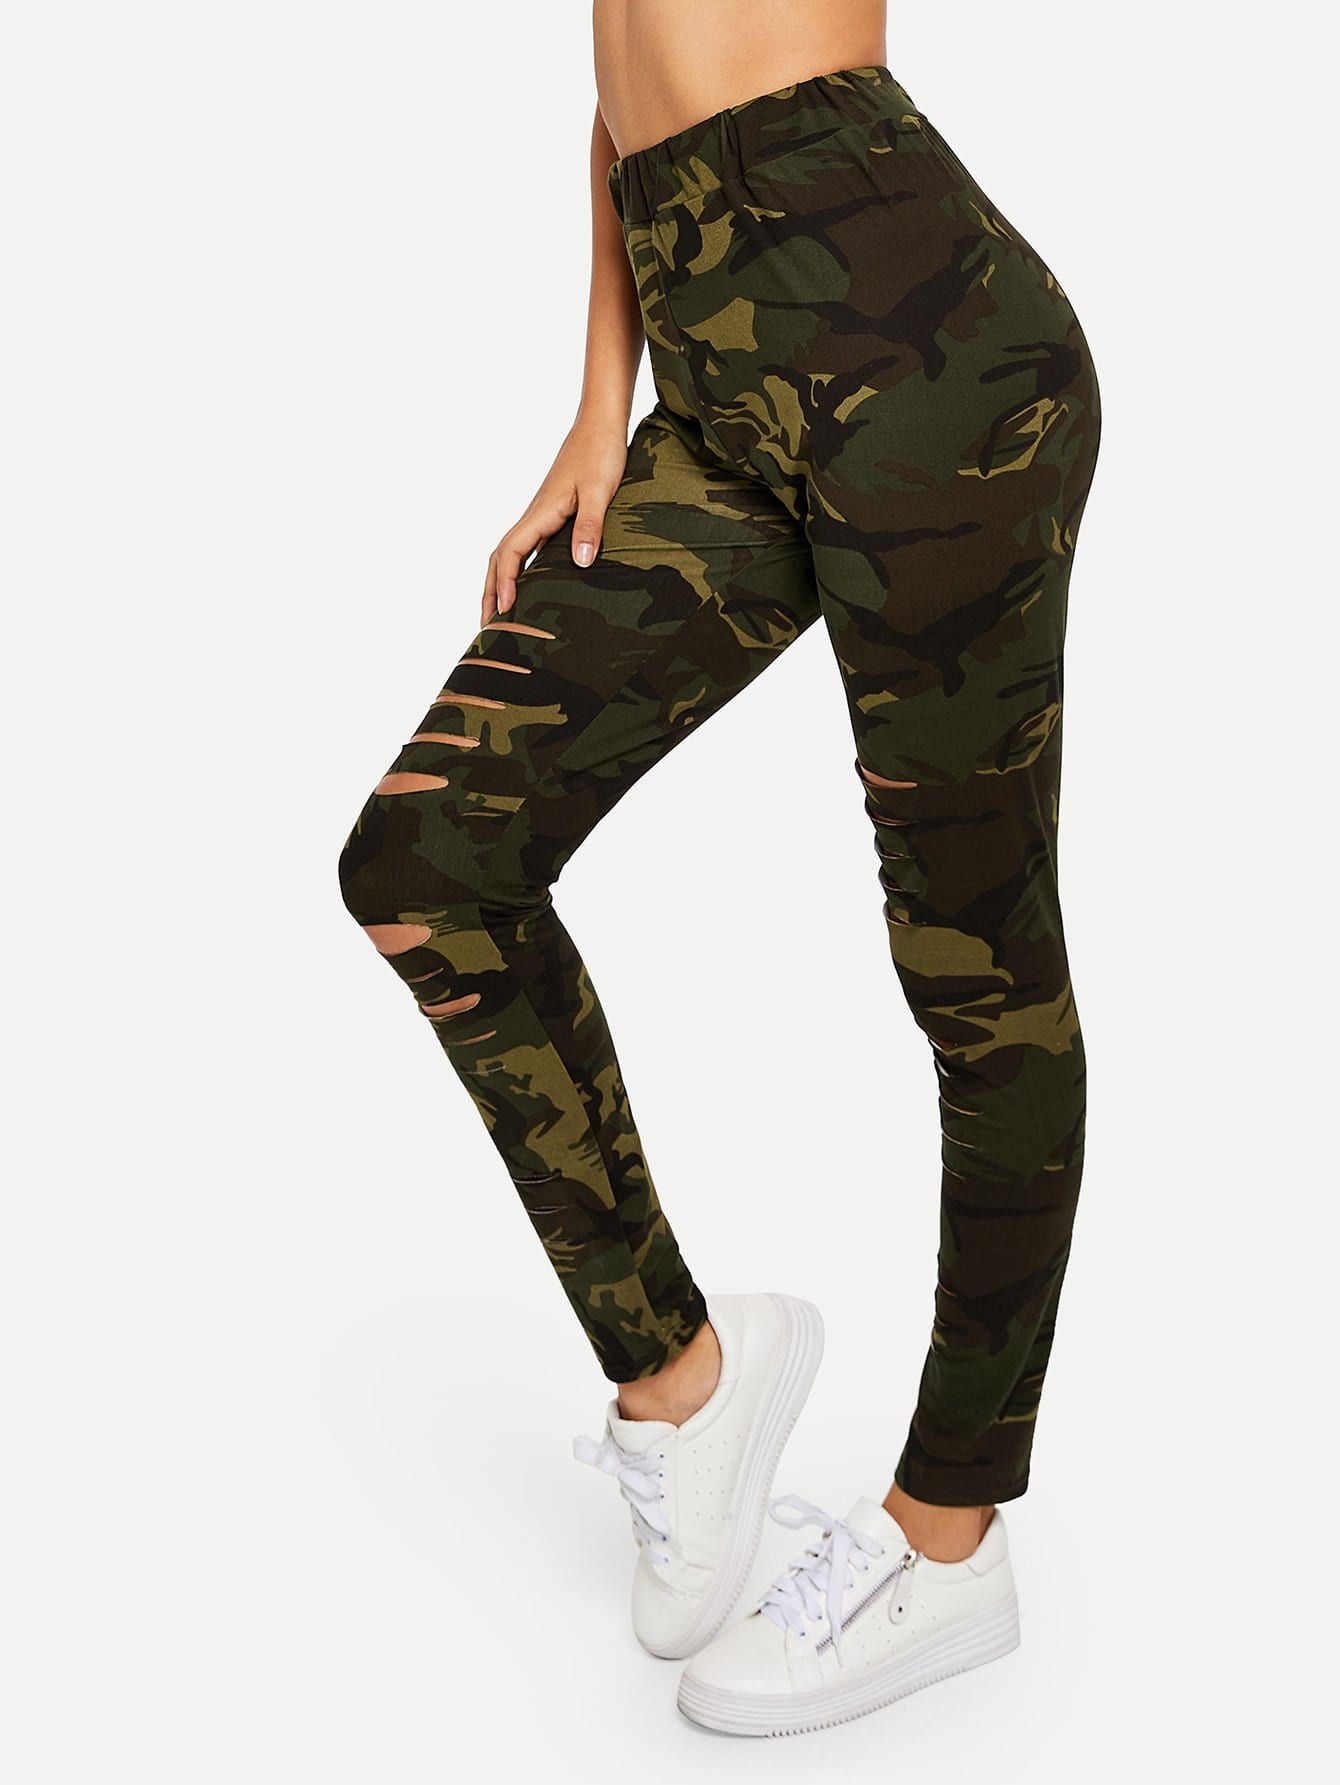 Ripped Skinny Camo Pants chic women s ripped skinny jeans